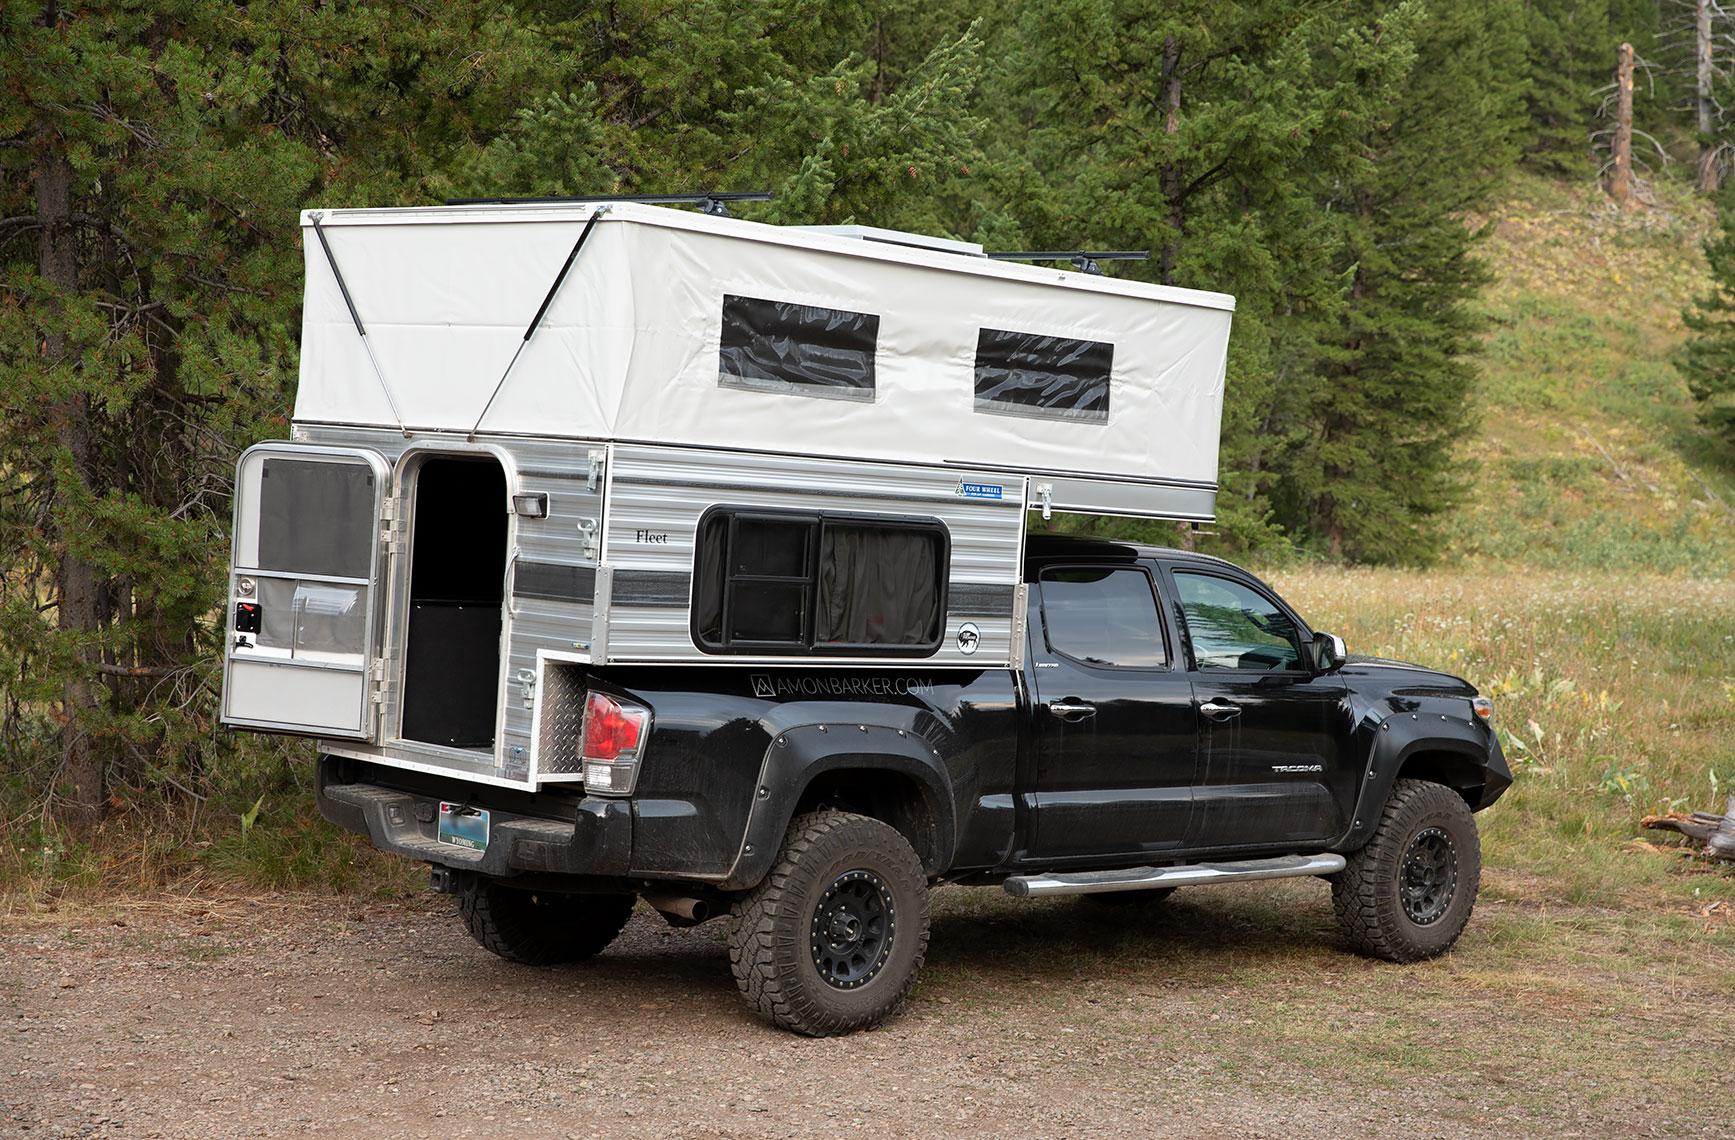 The back door can be latched open or closed. Four Wheel Campers Fleet 2016